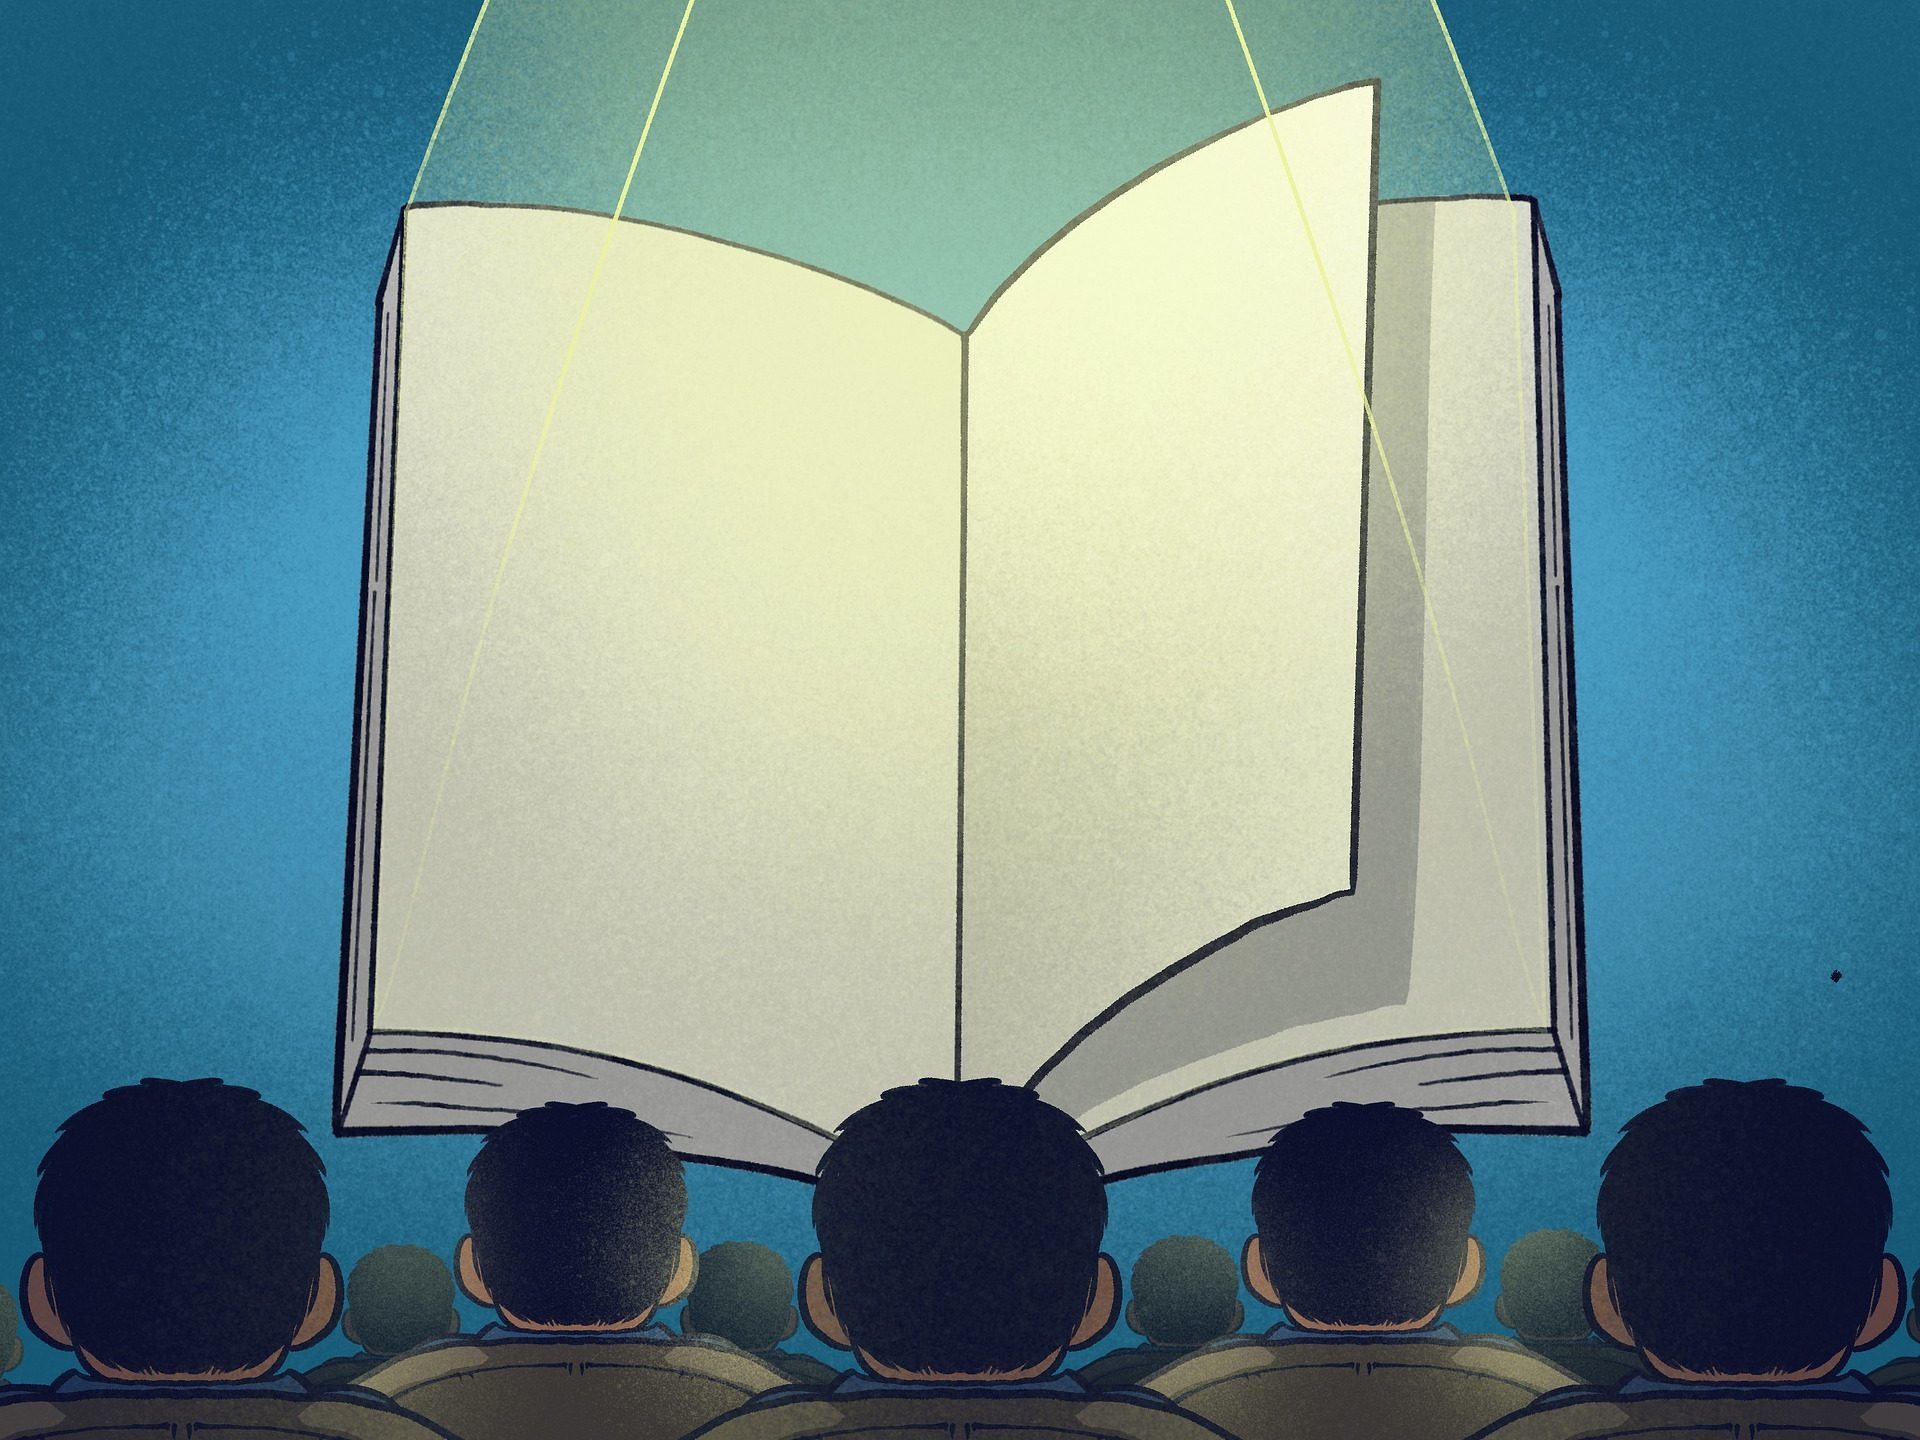 Main character syndrome is illustrated by a spotlighted book with blank pages in the place of a movie theater screen, suspended in front of an audience.